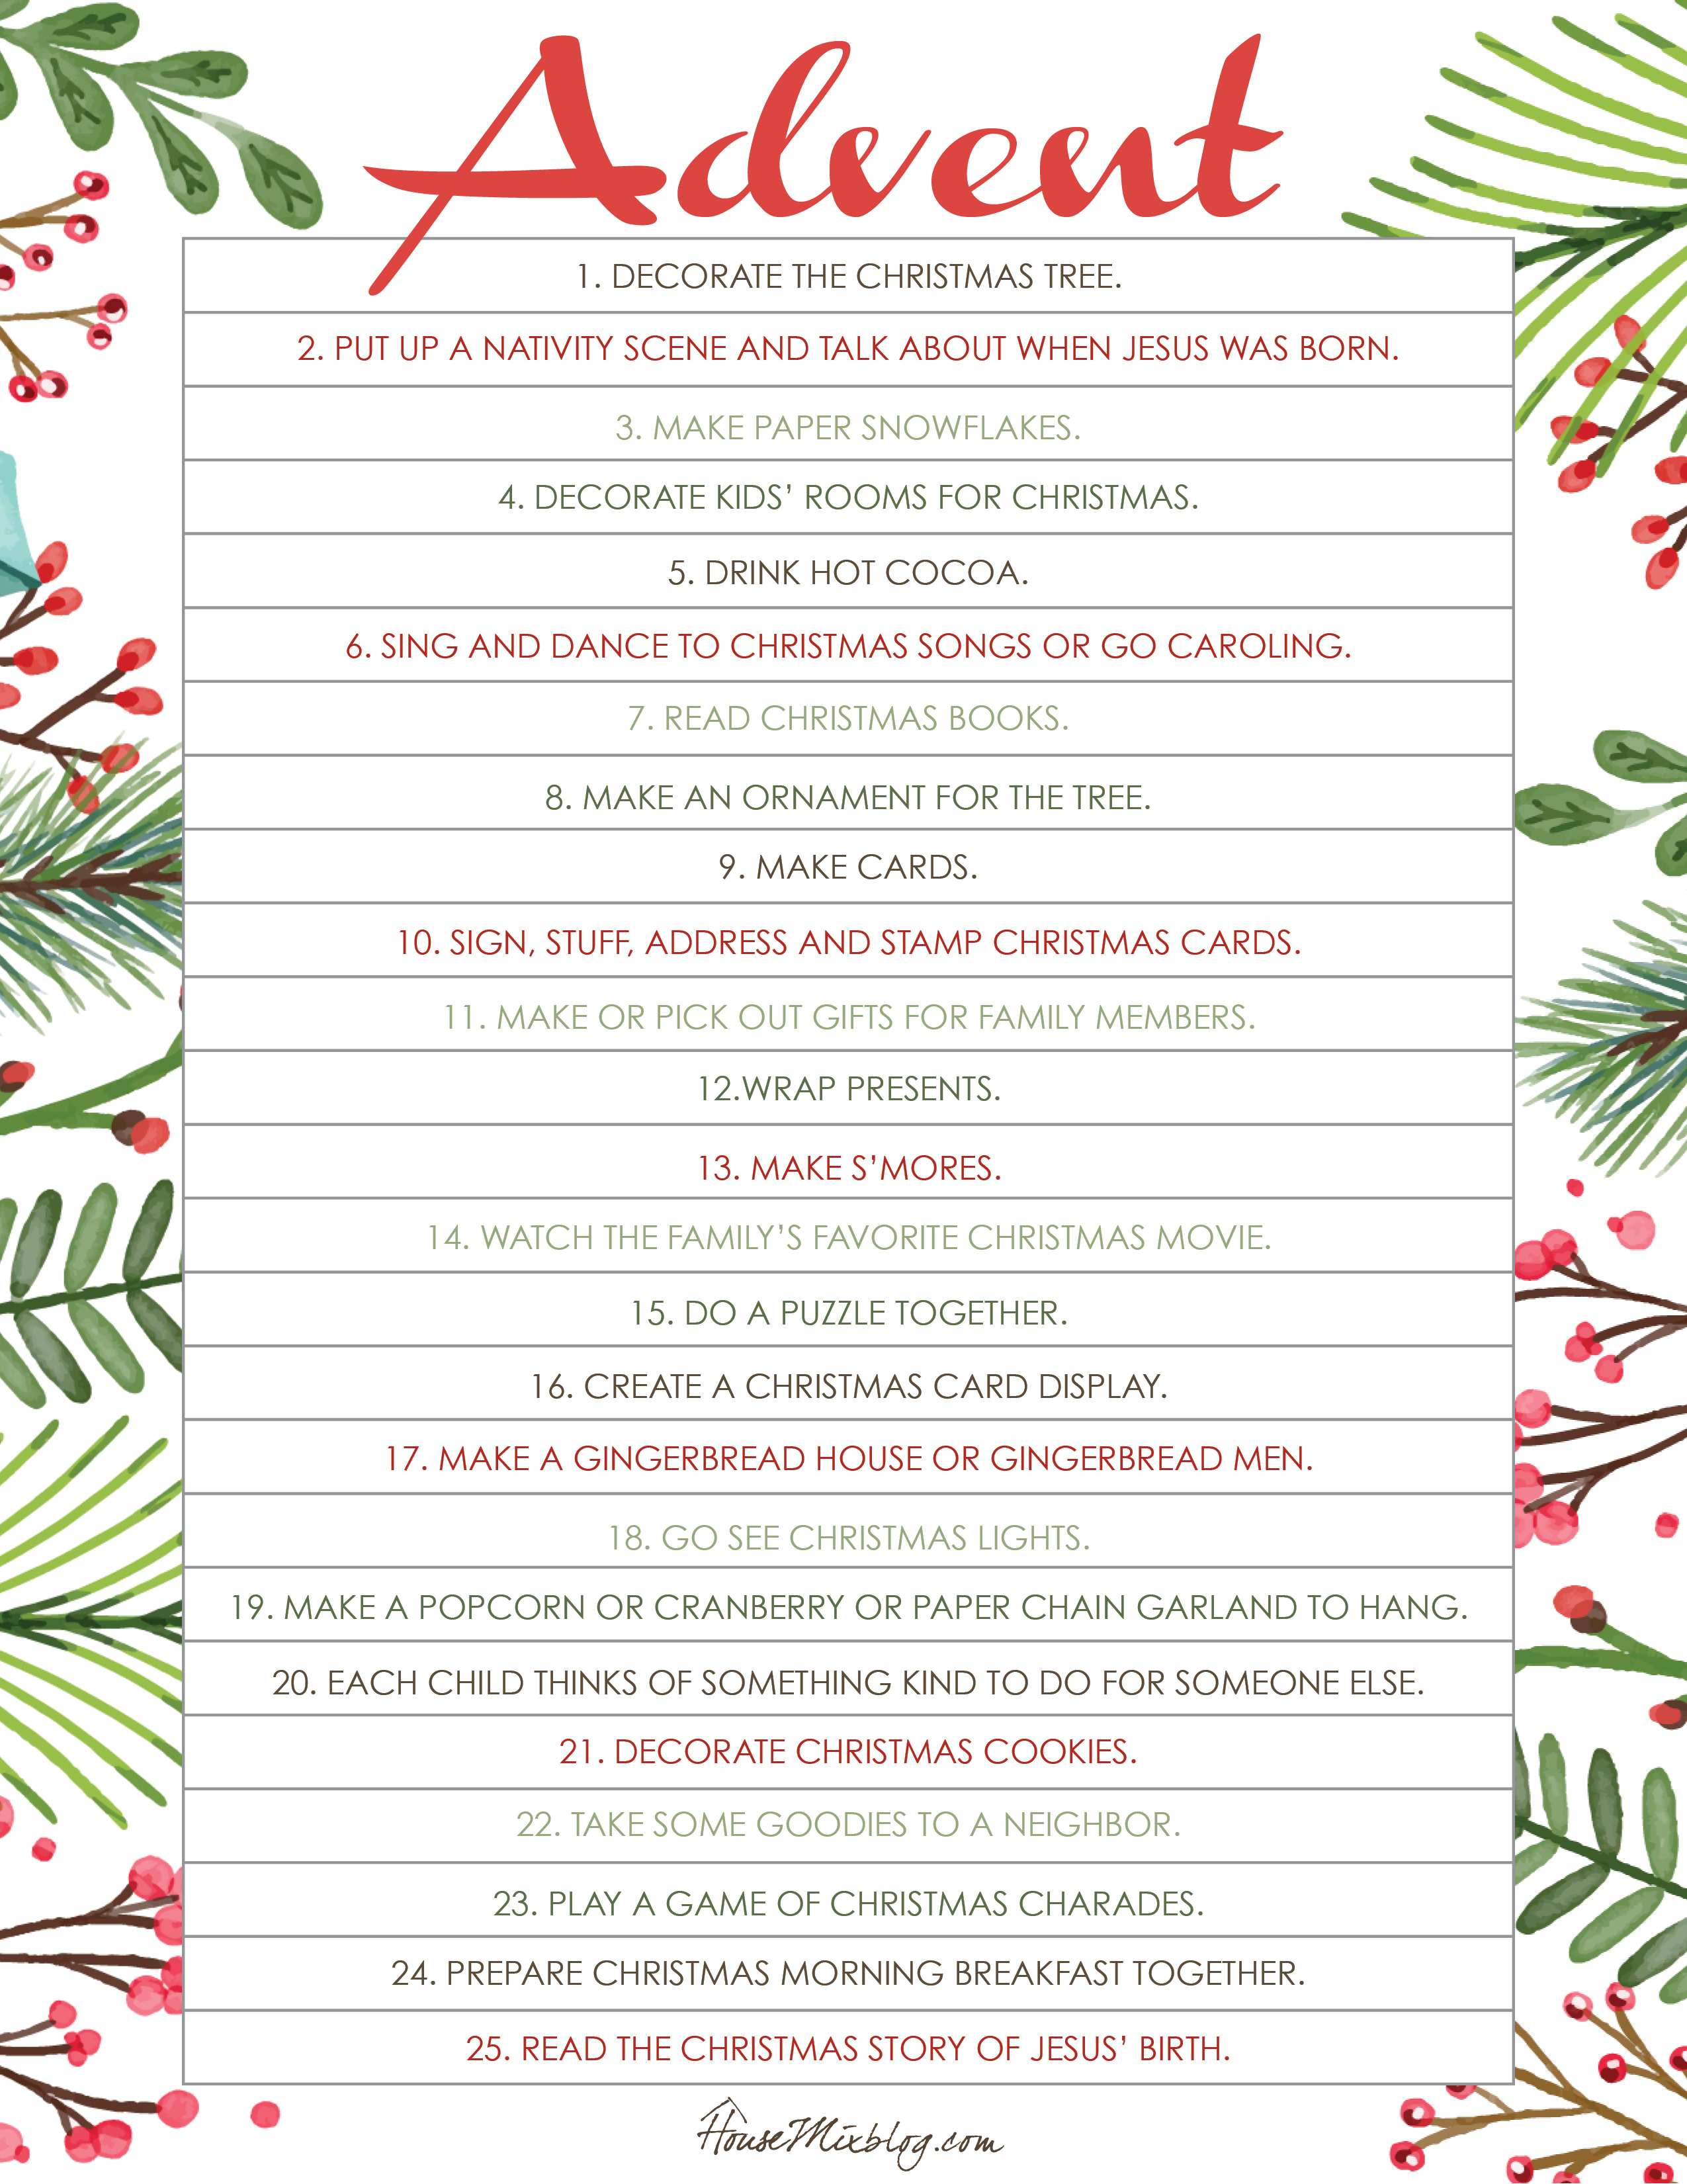 Printable Christmas Activities For Advent | House Mix - Printable Advent Puzzle